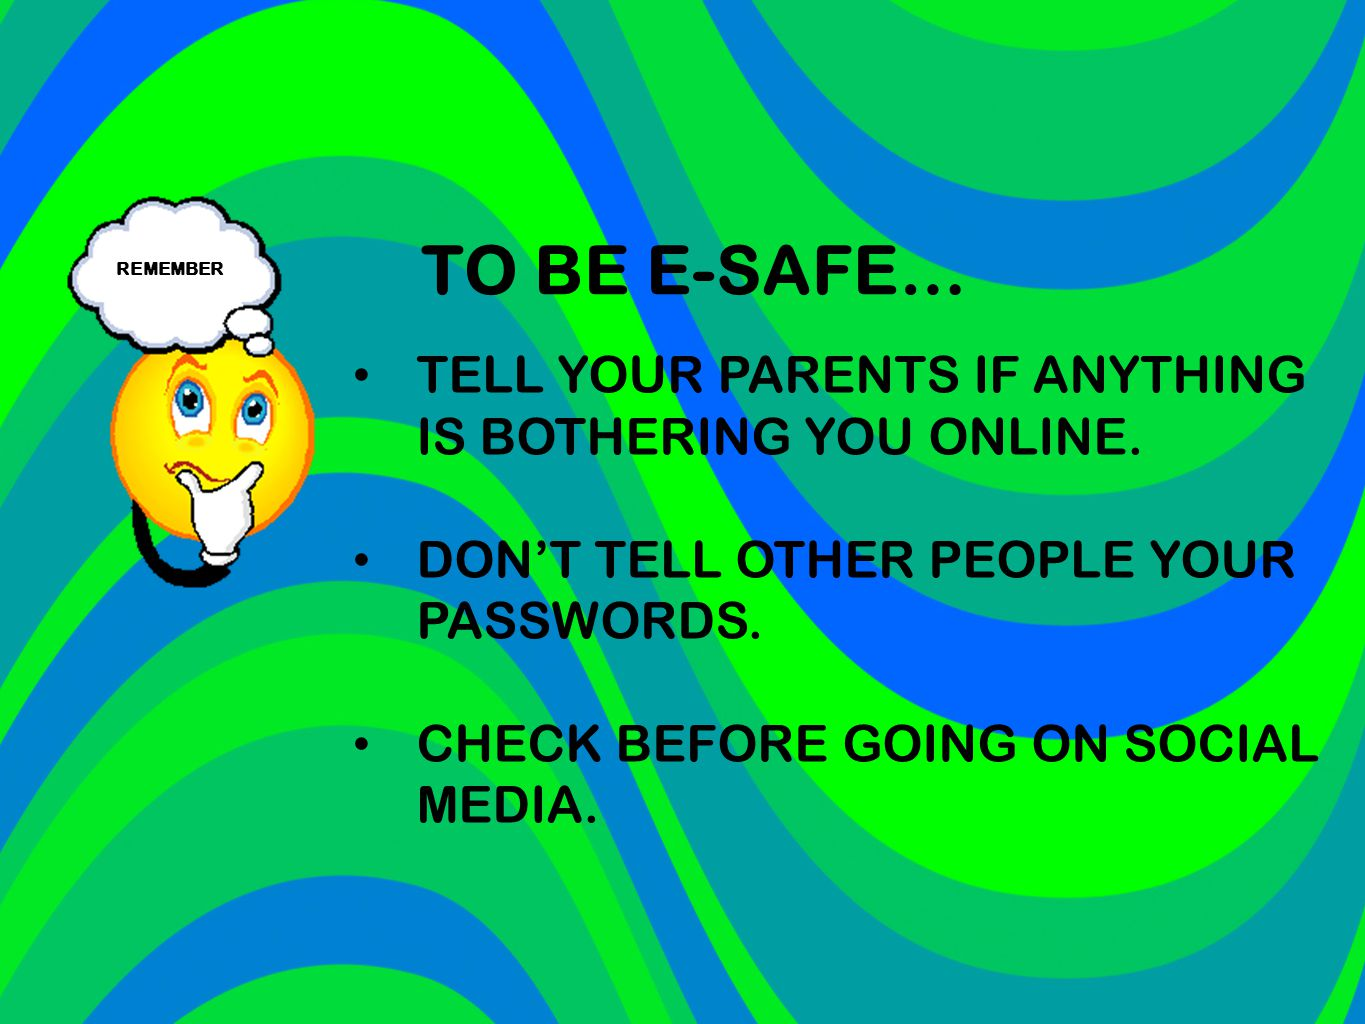 TELL YOUR PARENTS IF ANYTHING IS BOTHERING YOU ONLINE.